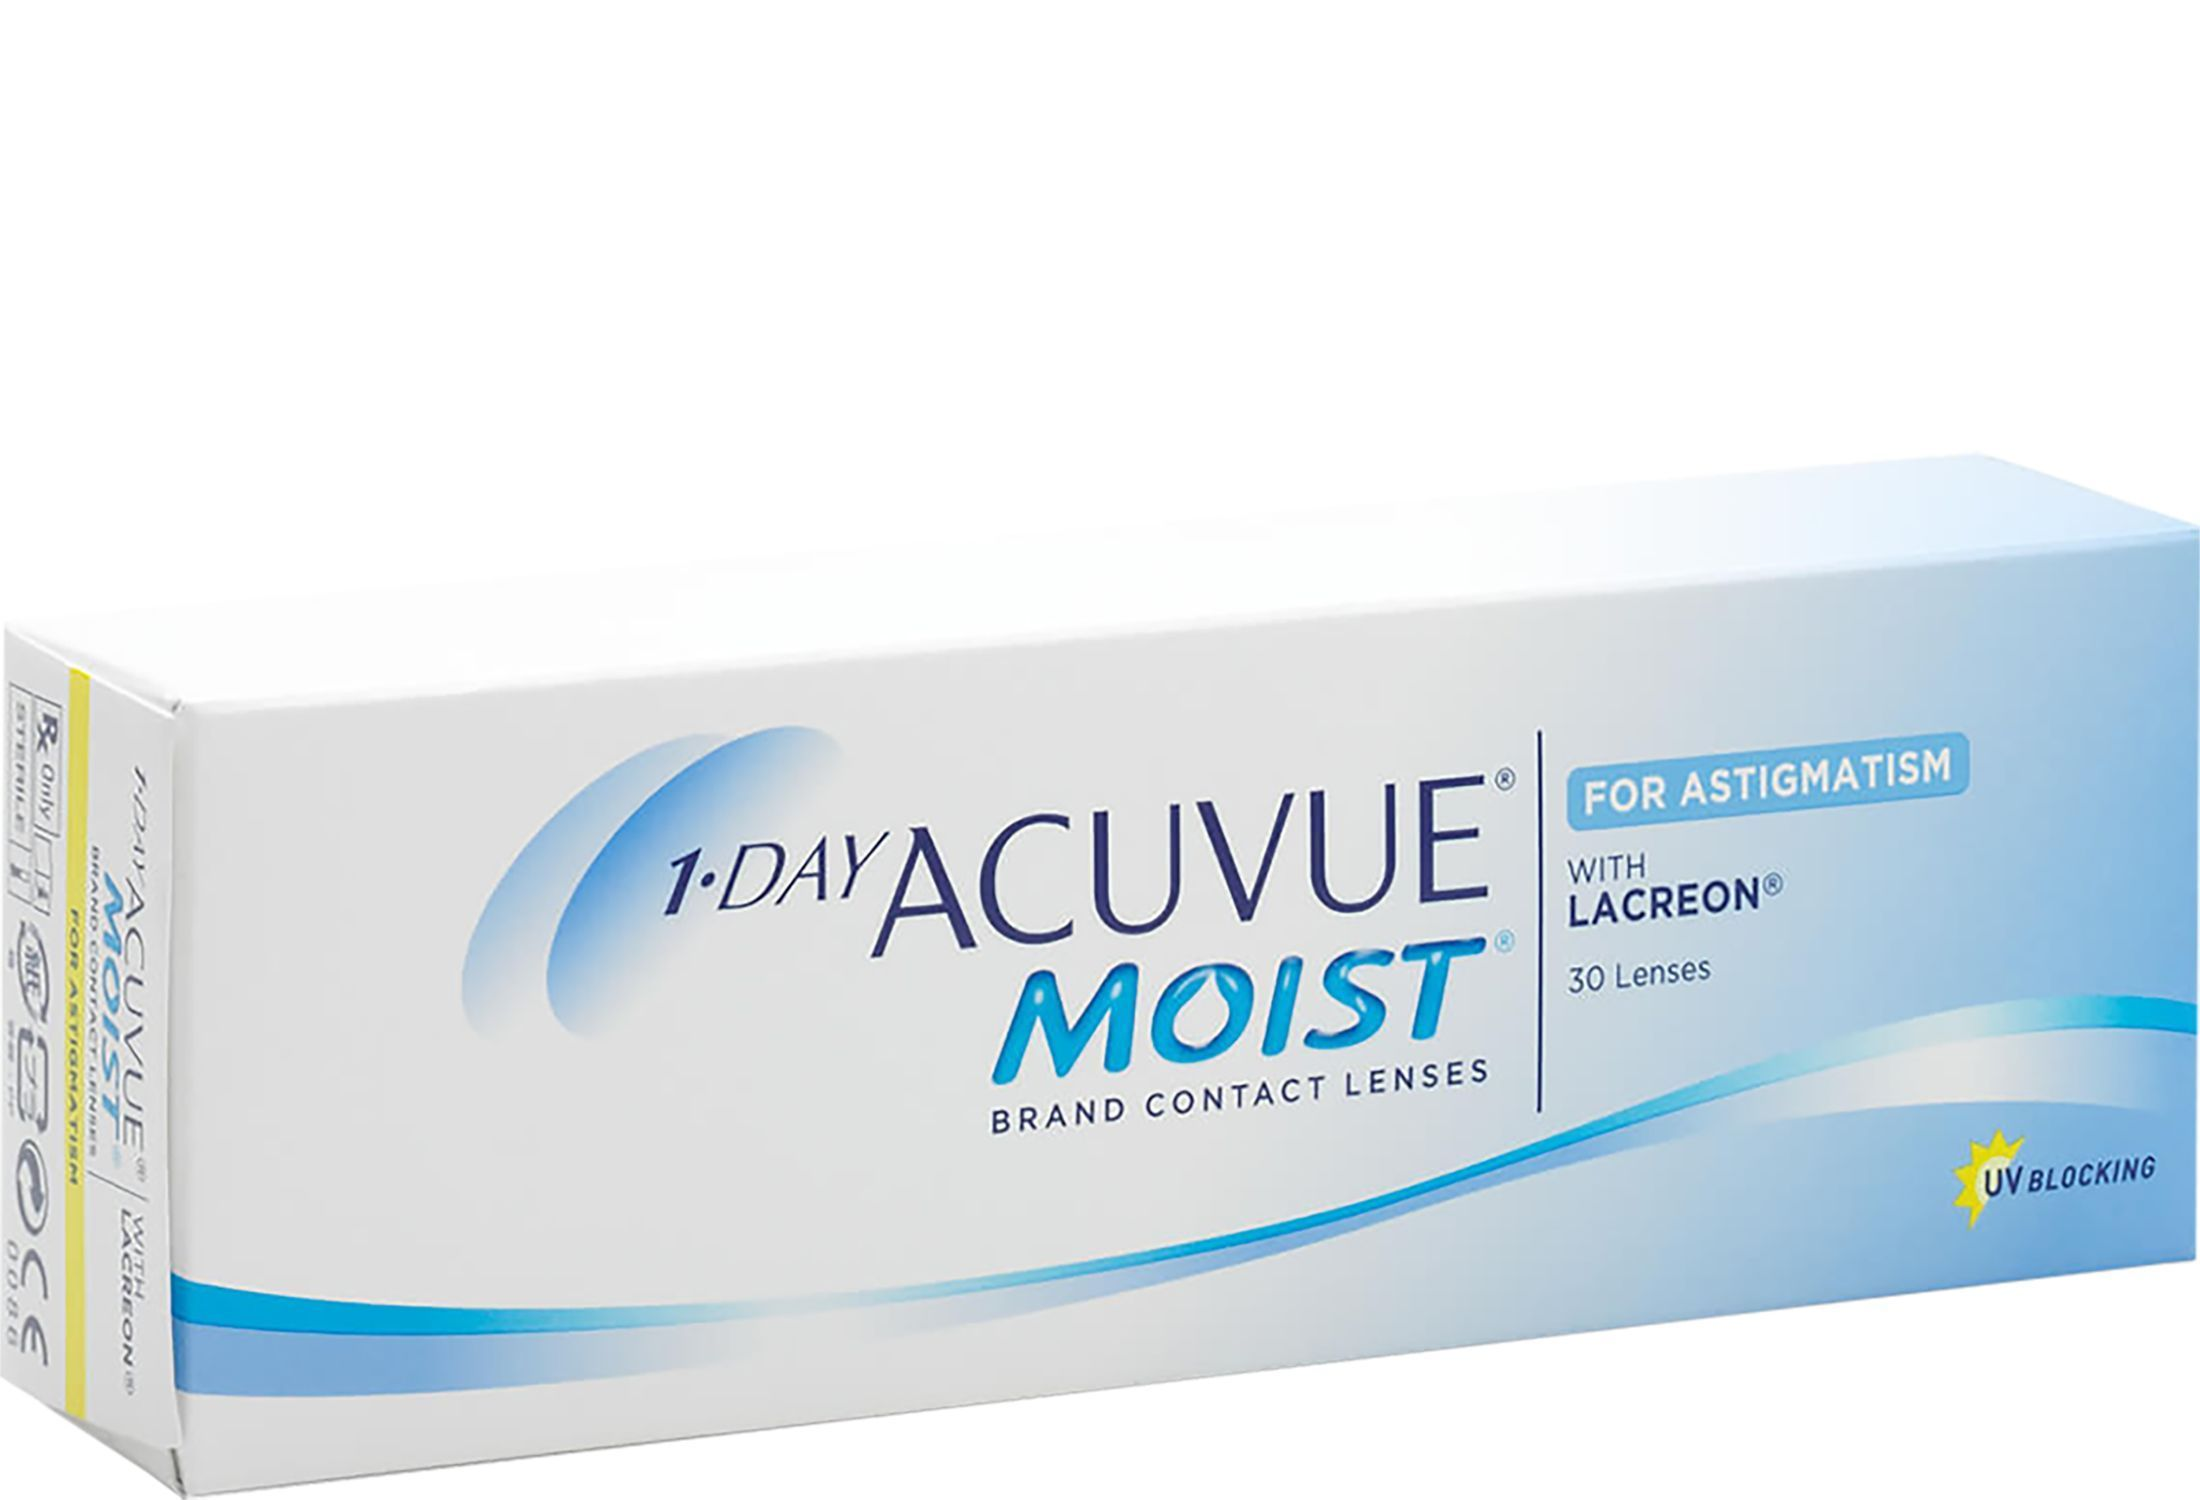 1-DAY ACUVUE MOIST for ASTIGMATISM 30 stk